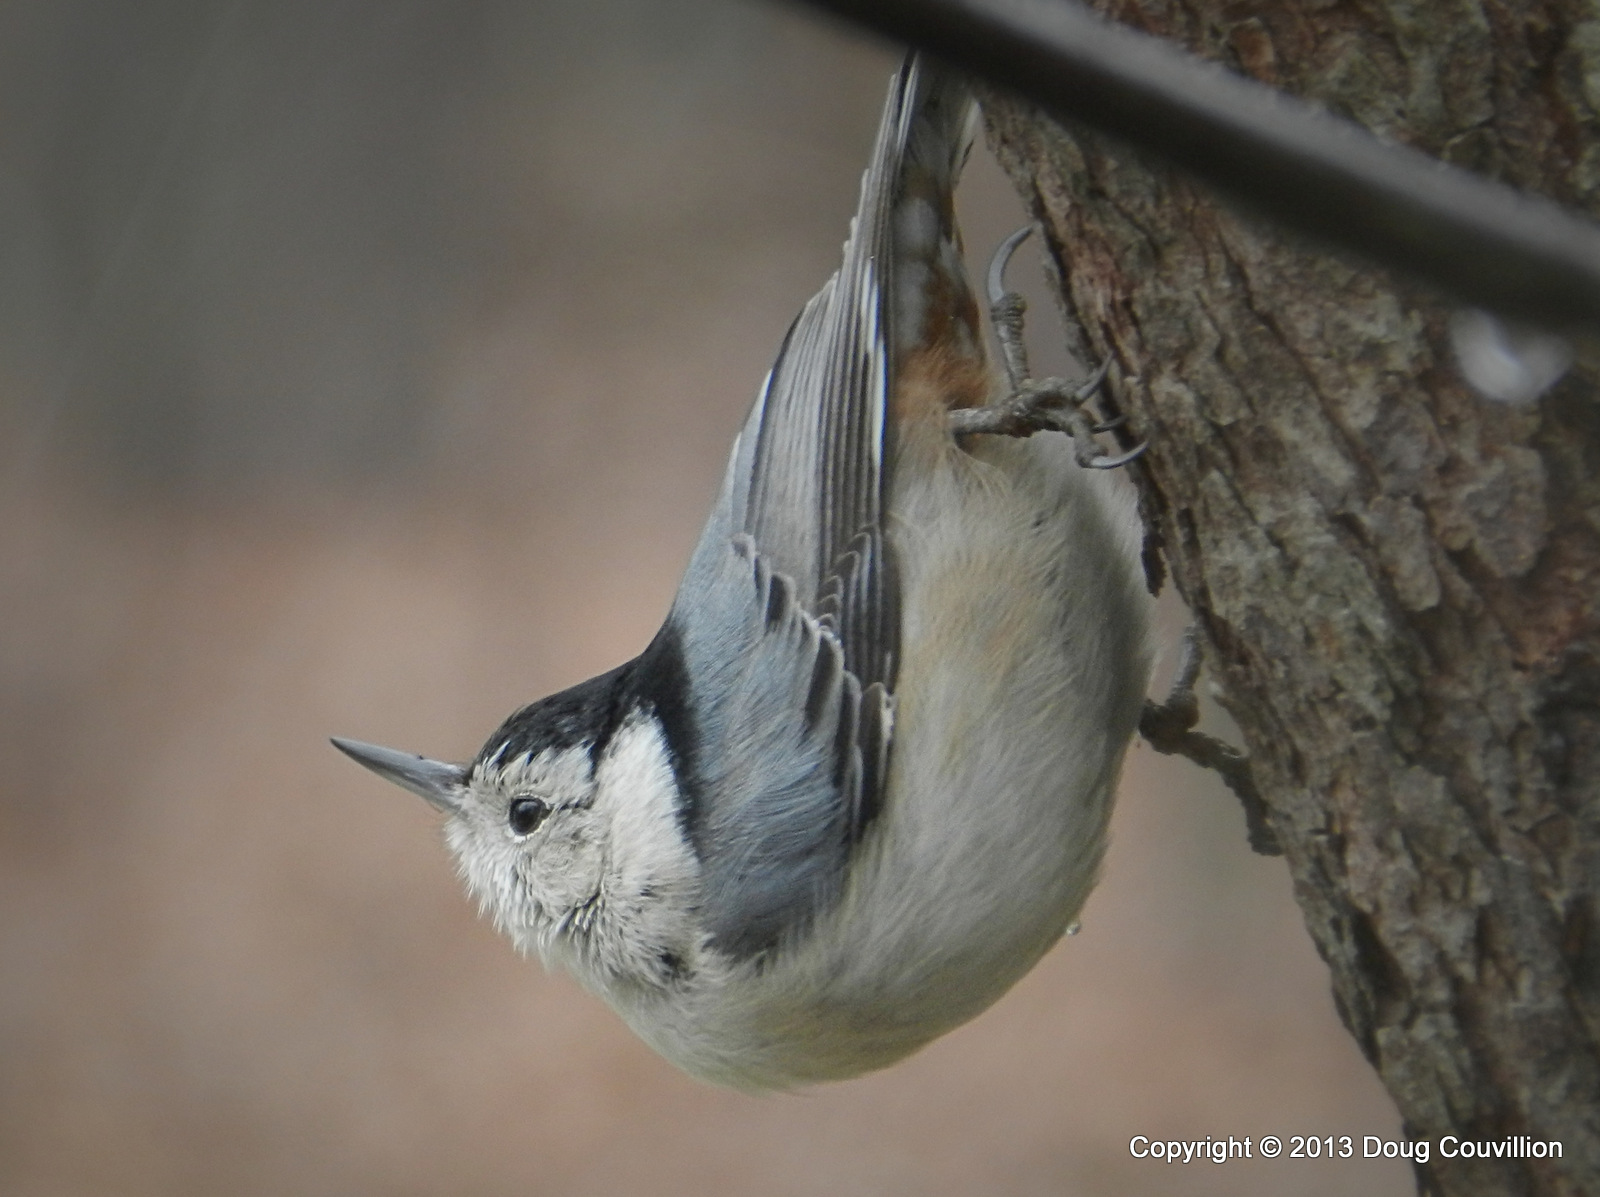 photograph of a White Breasted Nuthatch on a tree trunk